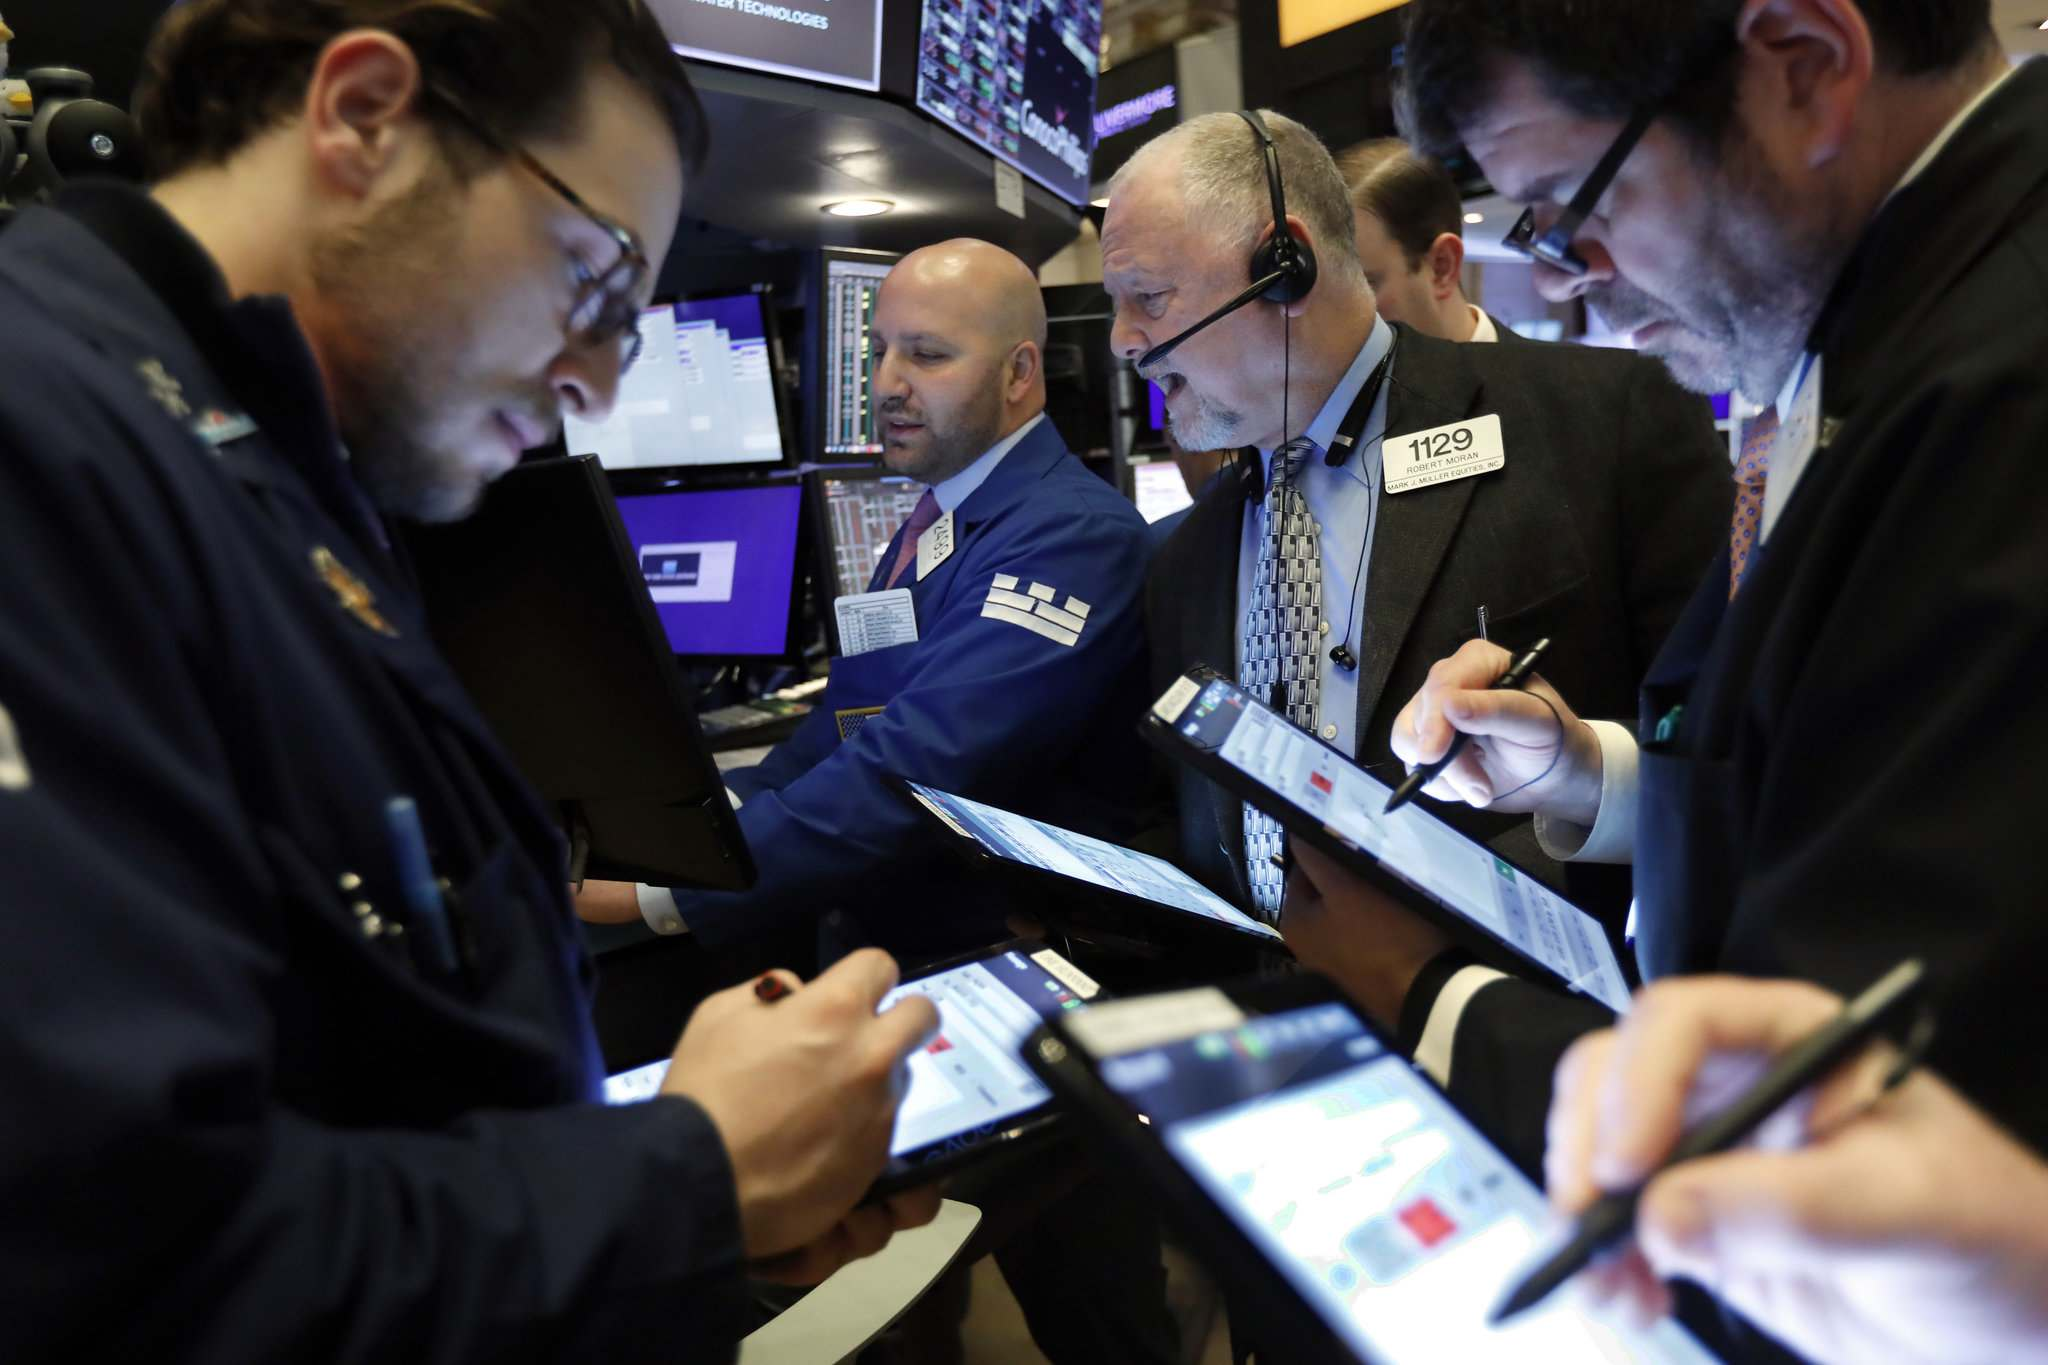 Richard Drew / The Associated Press</p><p>Specialist John Parisi (background centre), works with traders at his post on the floor of the New York Stock Exchange. Stocks opened sharply lower on Wall Street last week and bond yields were sinking to more record lows as investors fear that economic damage from the spreading coronavirus outbreak will be longer than previously thought. </p></p>